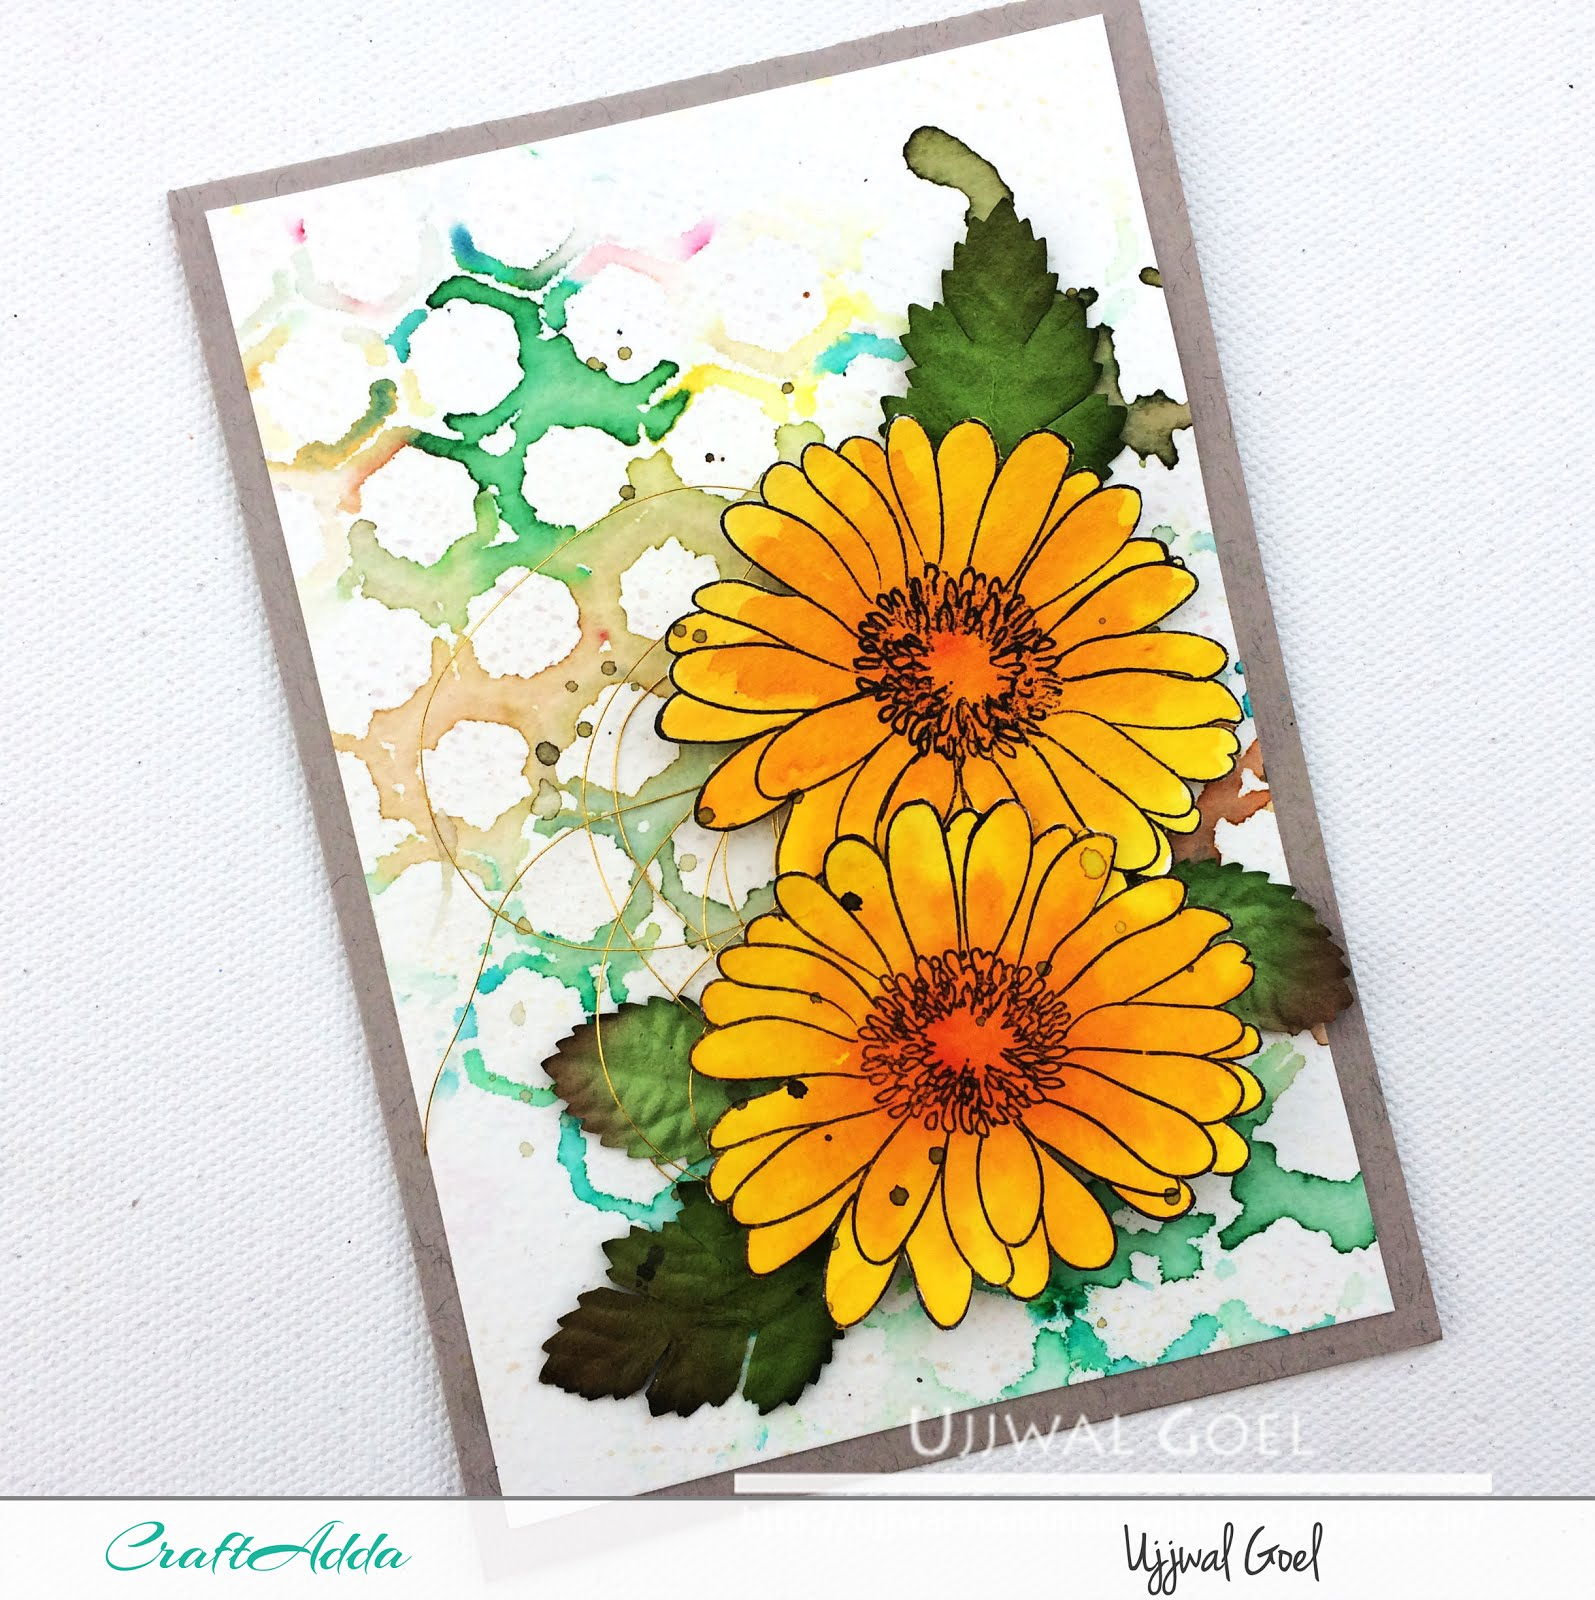 6 ways to use Stencils [Guest Post by Ujjwal] 5